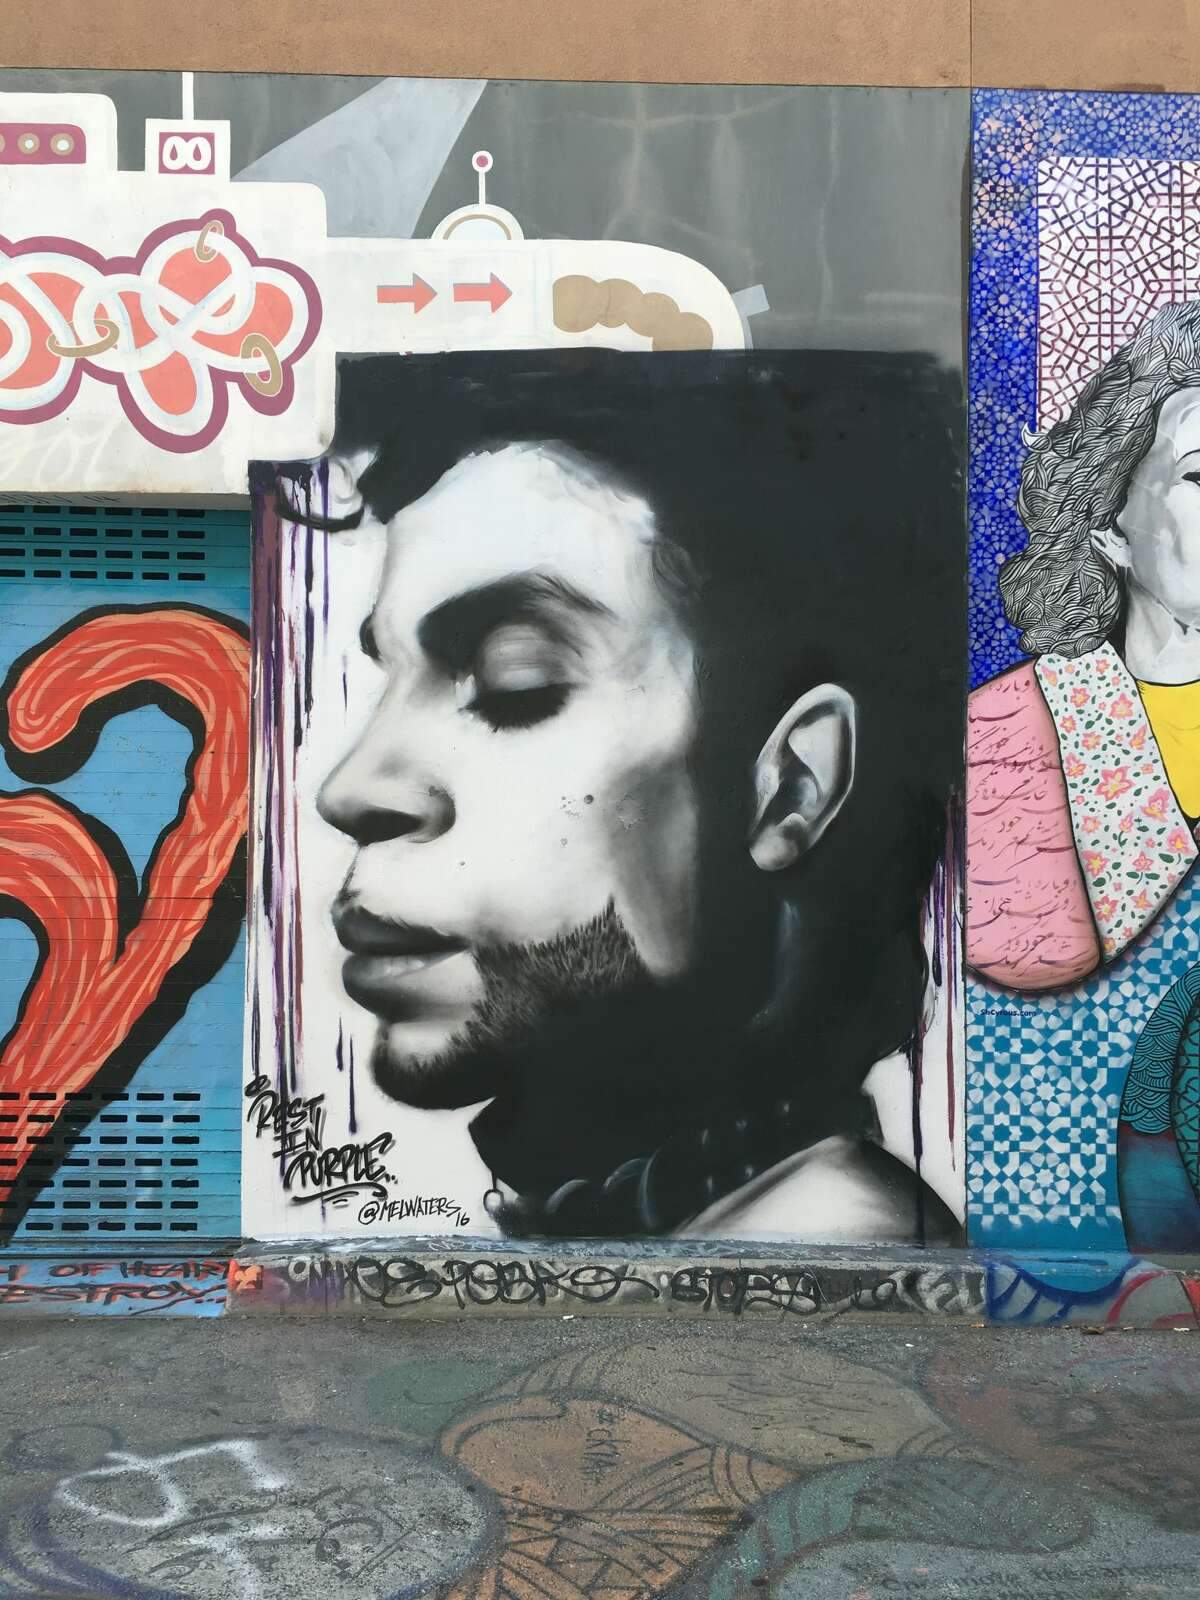 A mural of Prince by Mel Waters graces Clarion Alley in San Francisco's Mission District as part of the Clarion Alley Mural Project